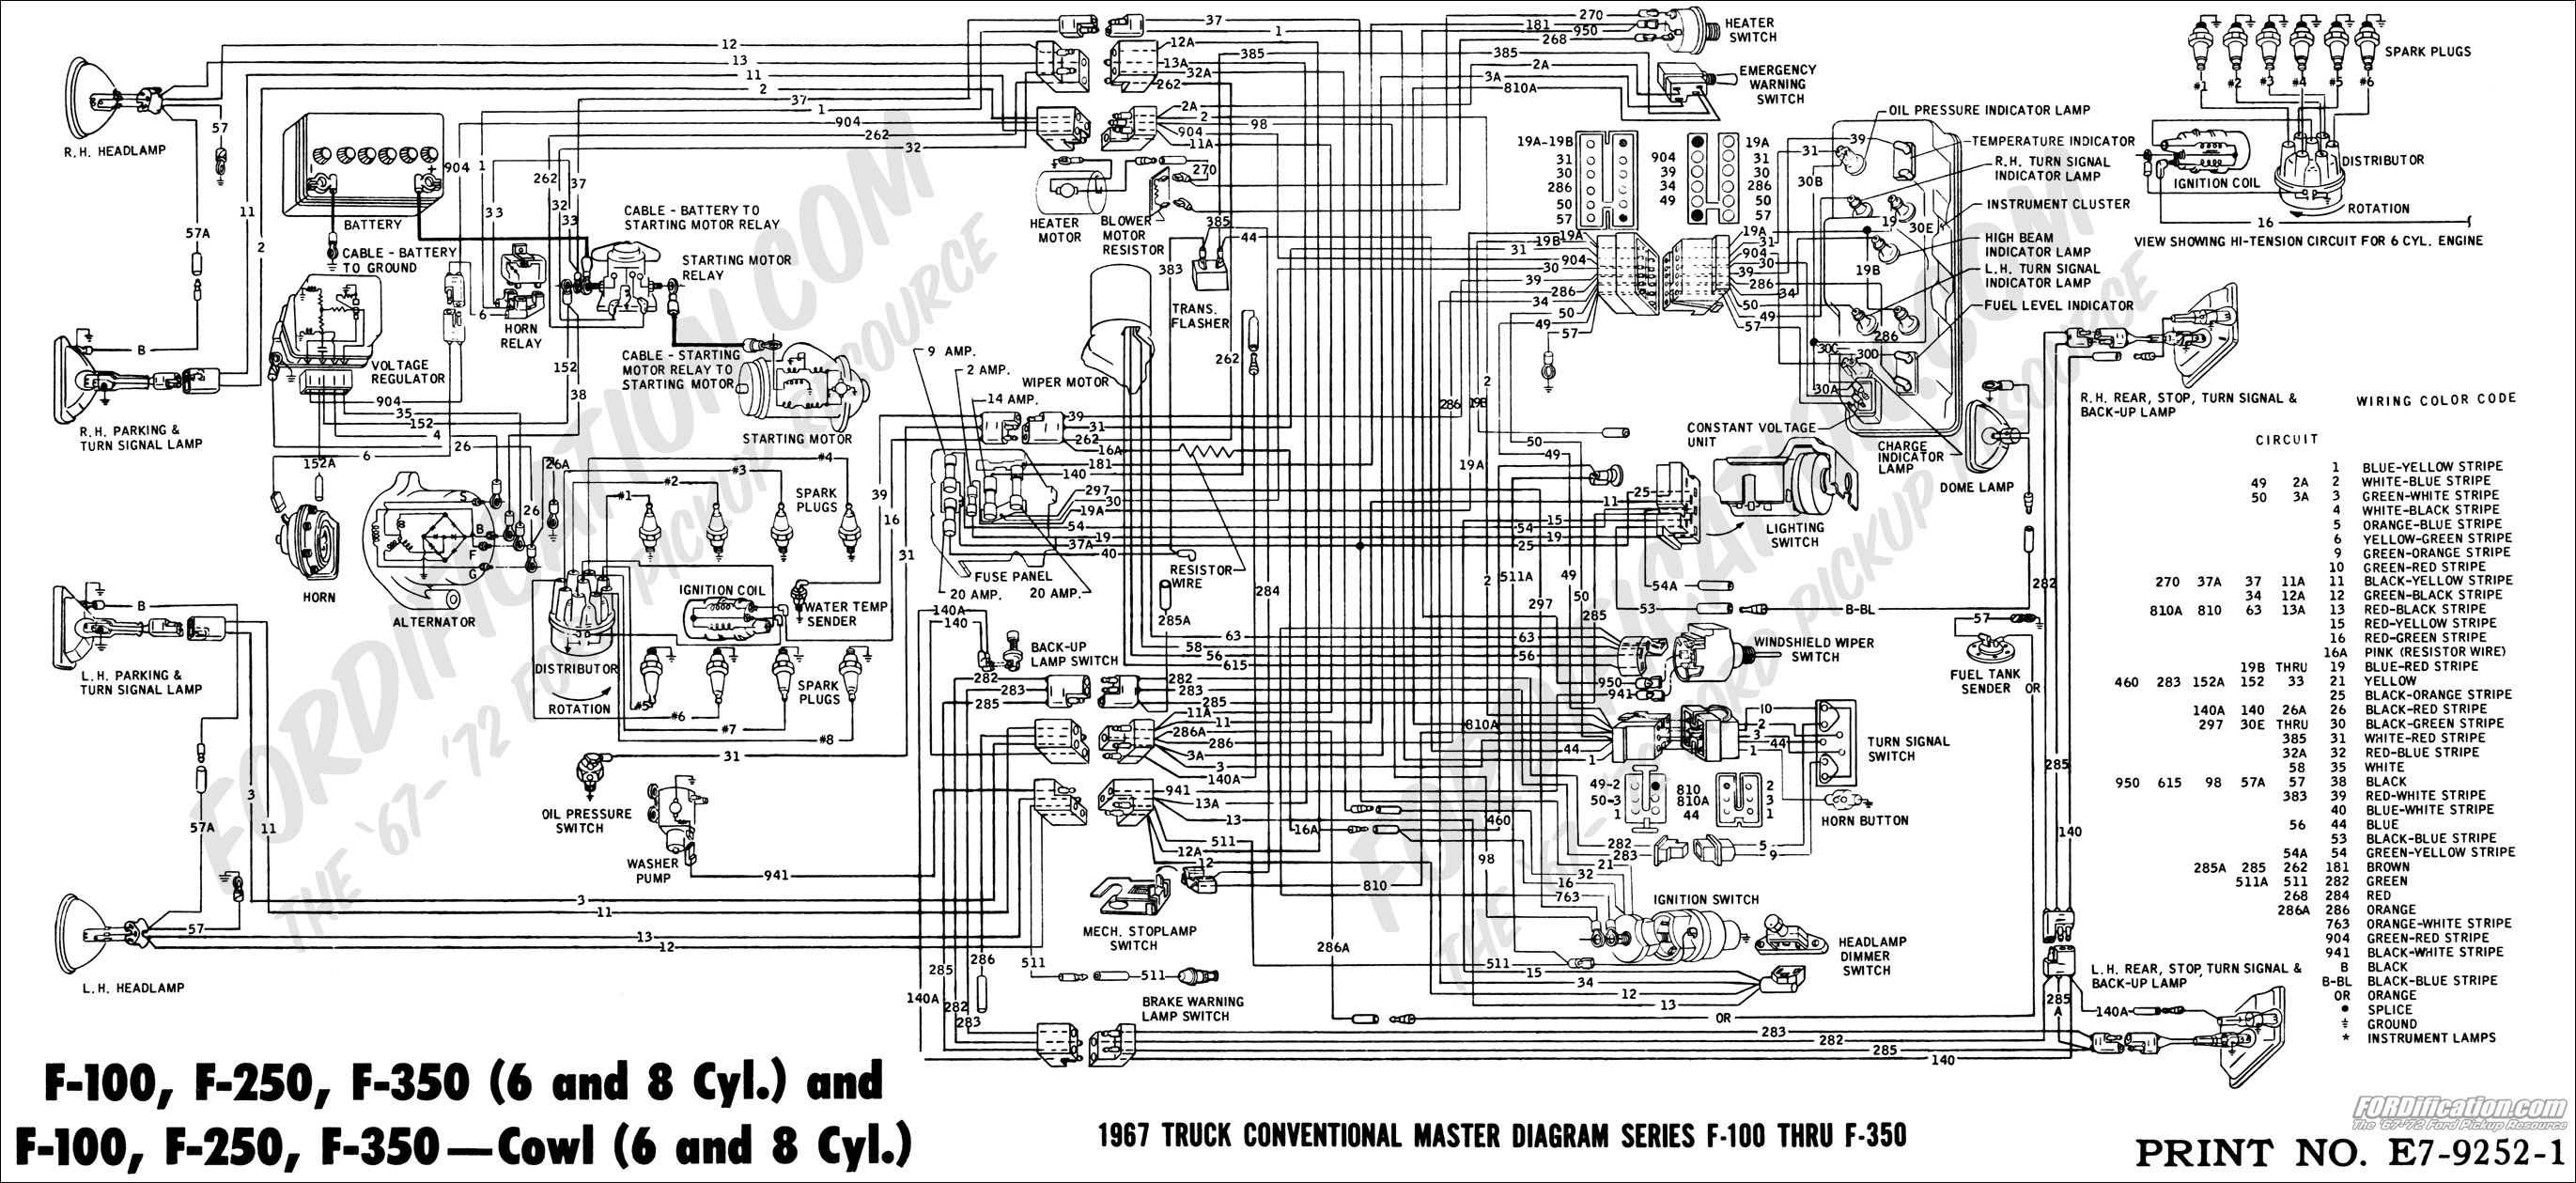 2002 Ford Truck Wiring Diagram - Wiring Liry Diagram A4  Ford F Wiring Diagram Transfer on 2007 ford f-250 wiring diagram, 2004 ford f-250 wiring diagram, 1977 ford f-250 wiring diagram, 1993 ford f-250 wiring diagram, 1969 ford f-250 wiring diagram, 1988 ford f-250 wiring diagram, 1978 ford f-250 wiring diagram, 2000 ford f-250 wiring diagram, 96 ford f-250 wiring diagram, 1996 gmc sonoma wiring diagram, 2006 ford f-250 wiring diagram, 1997 ford f-250 wiring diagram, 1976 ford f-250 wiring diagram, 1986 ford f-250 wiring diagram, 1966 ford f-250 wiring diagram, 1989 ford f-250 wiring diagram, 2003 ford f-250 wiring diagram, 1995 ford f-150 wiring diagram, 1990 ford f-250 wiring diagram, 1999 ford f-250 wiring diagram,